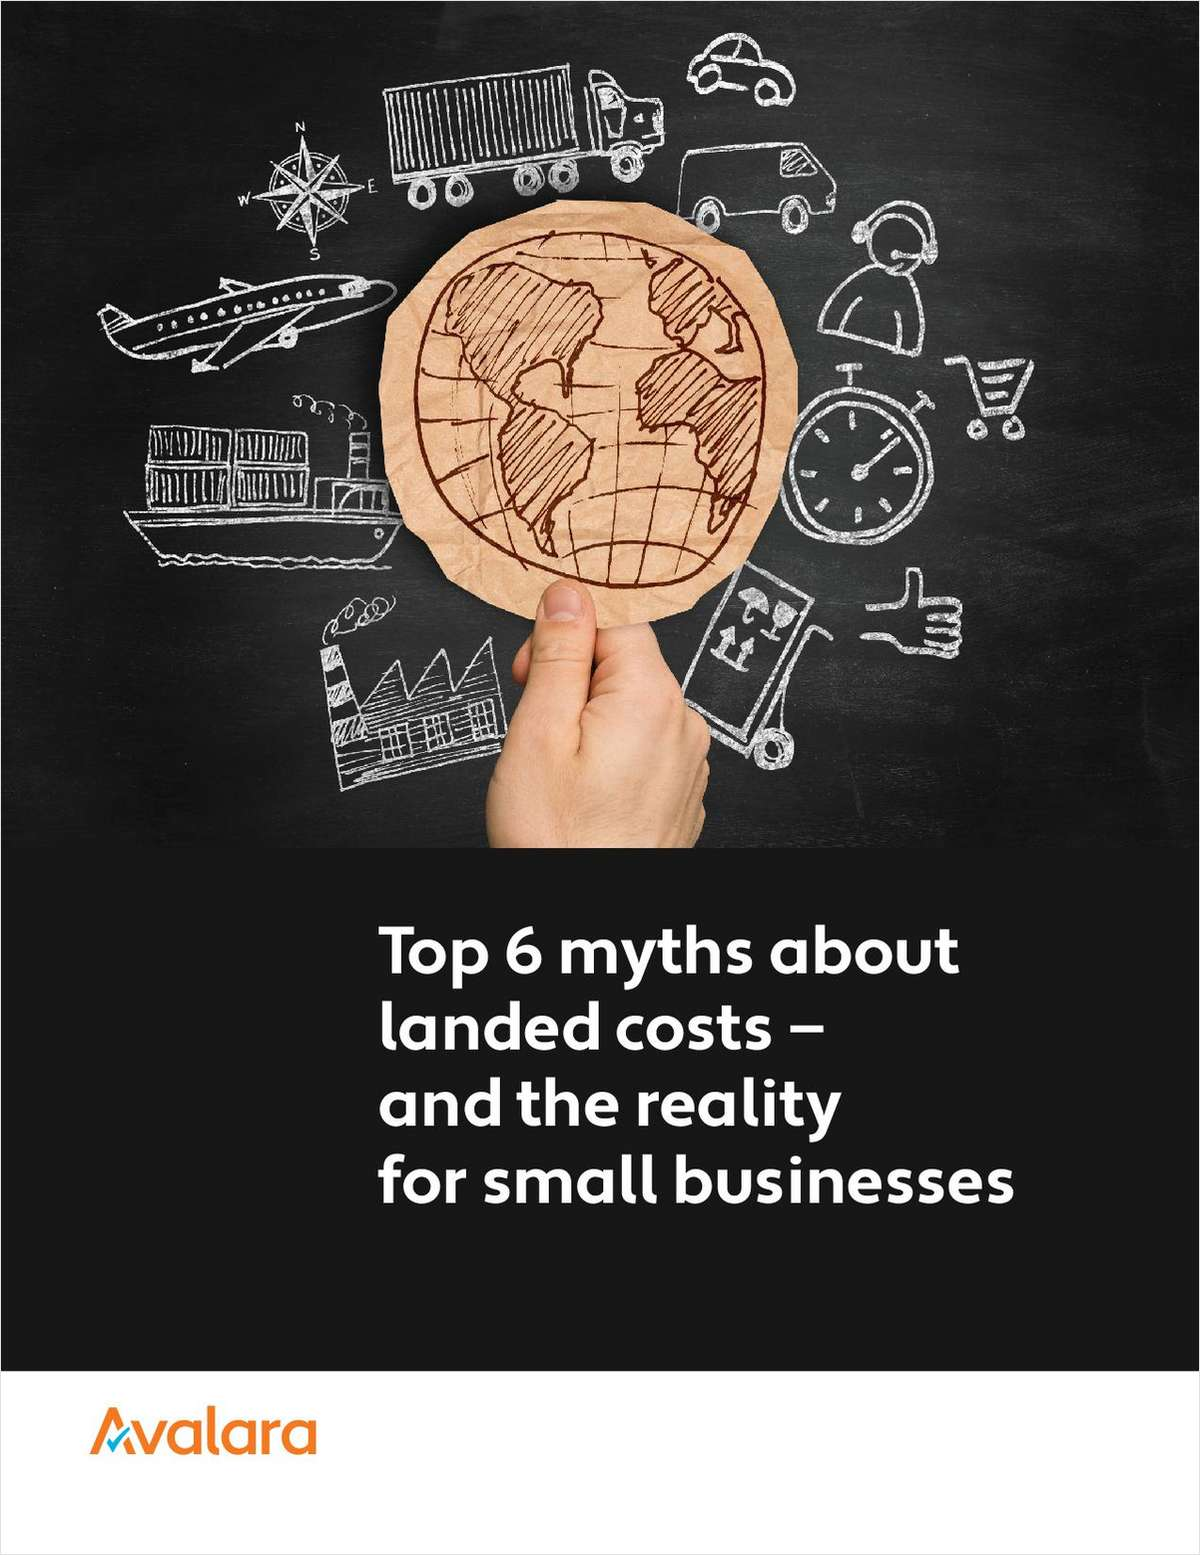 Top 6 Myths About Landed Costs and the Reality for Small Businesses